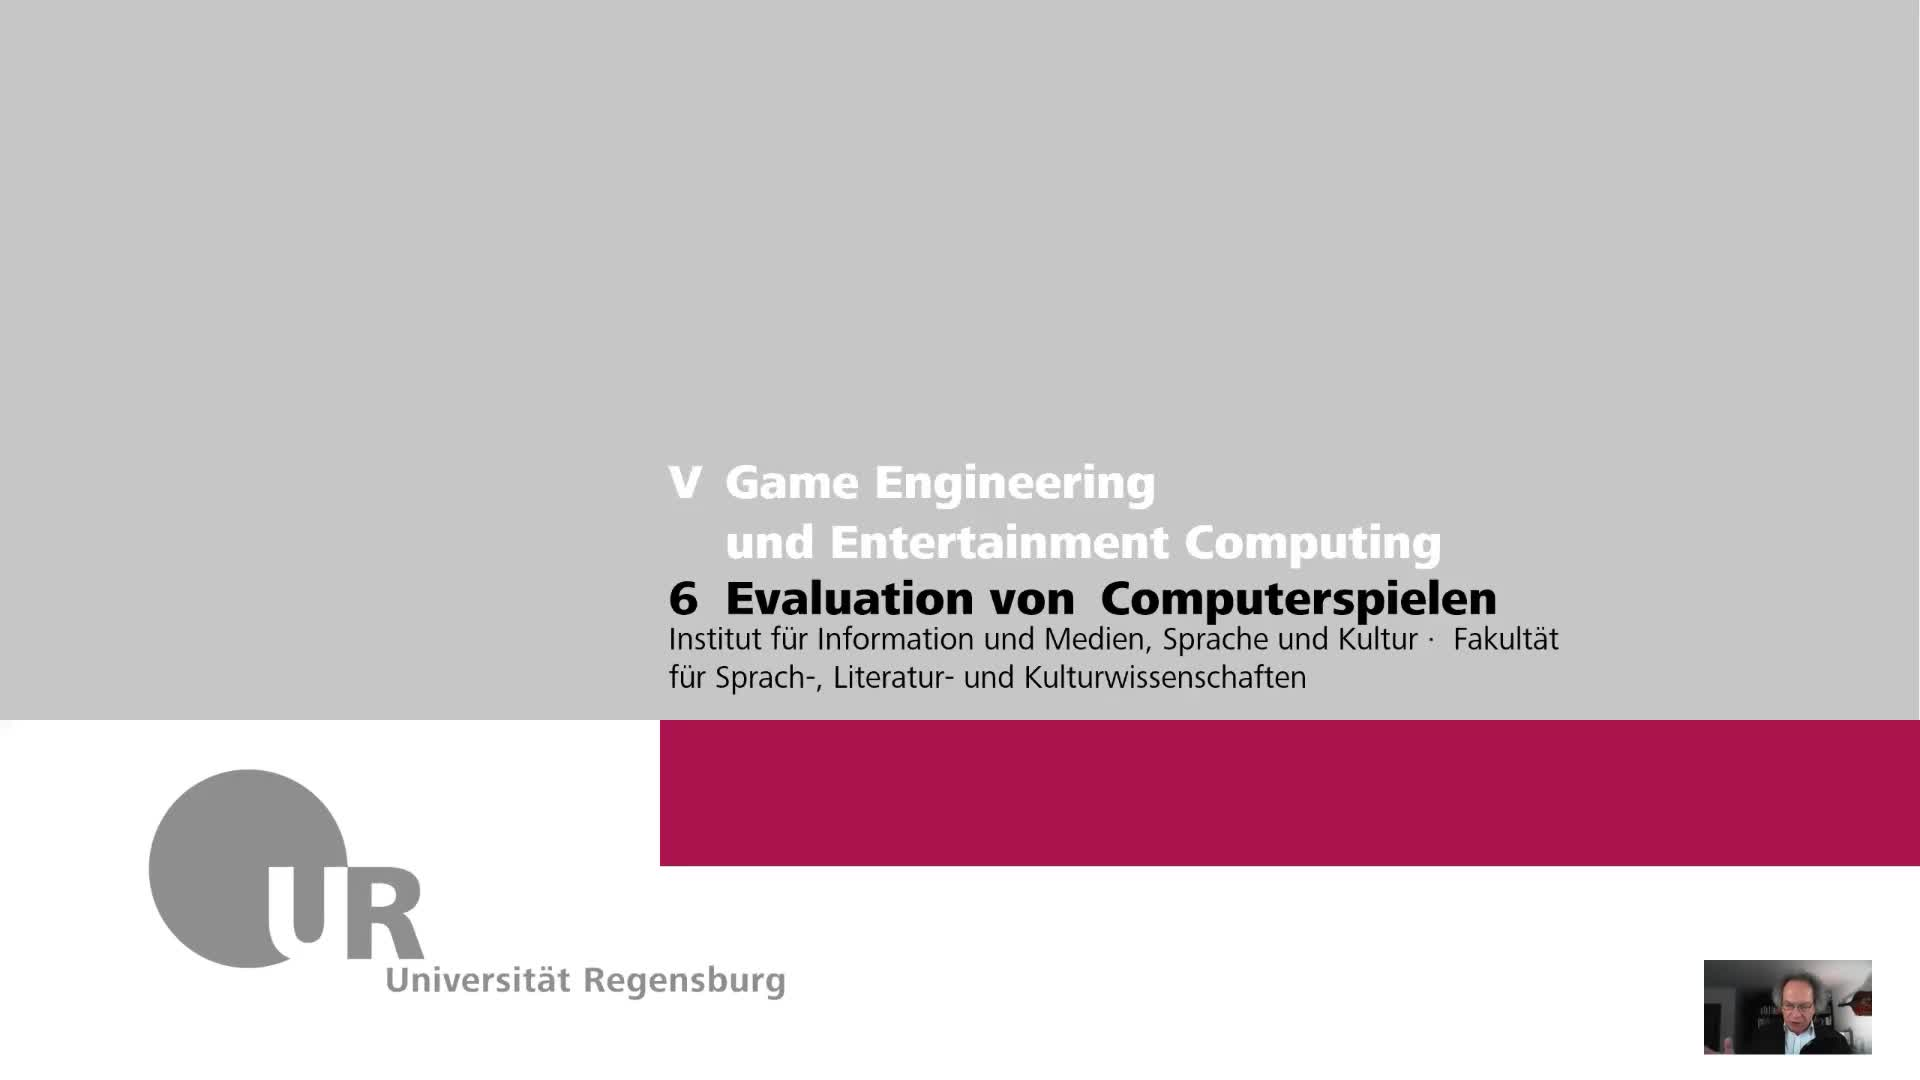 GEEC SS 2020 06 Computerspiel: Playability, Game Experience und Evaluation